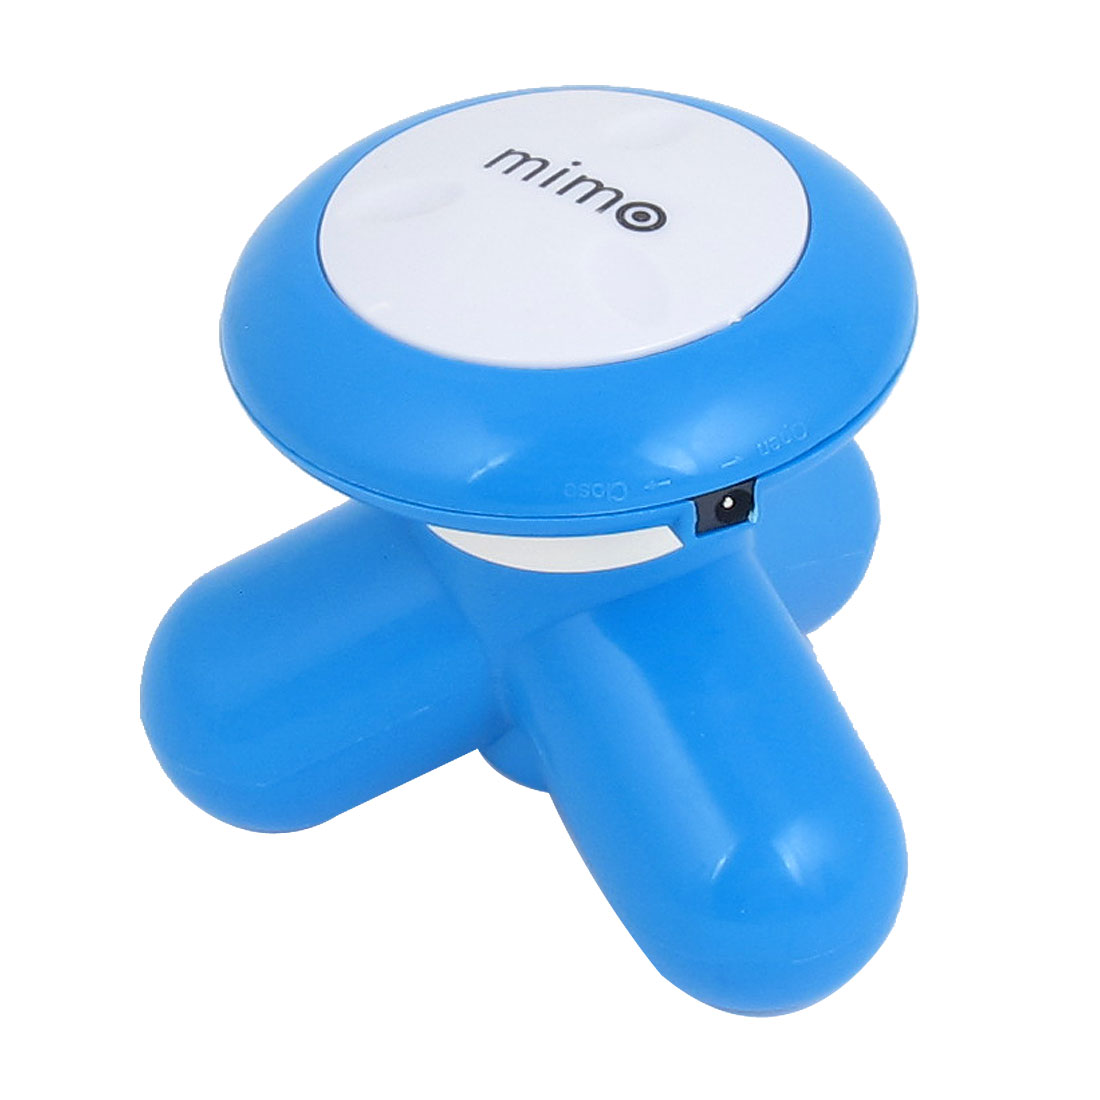 Blue Battery Powered Handheld Body Massage Electric USB Vibrating Massager